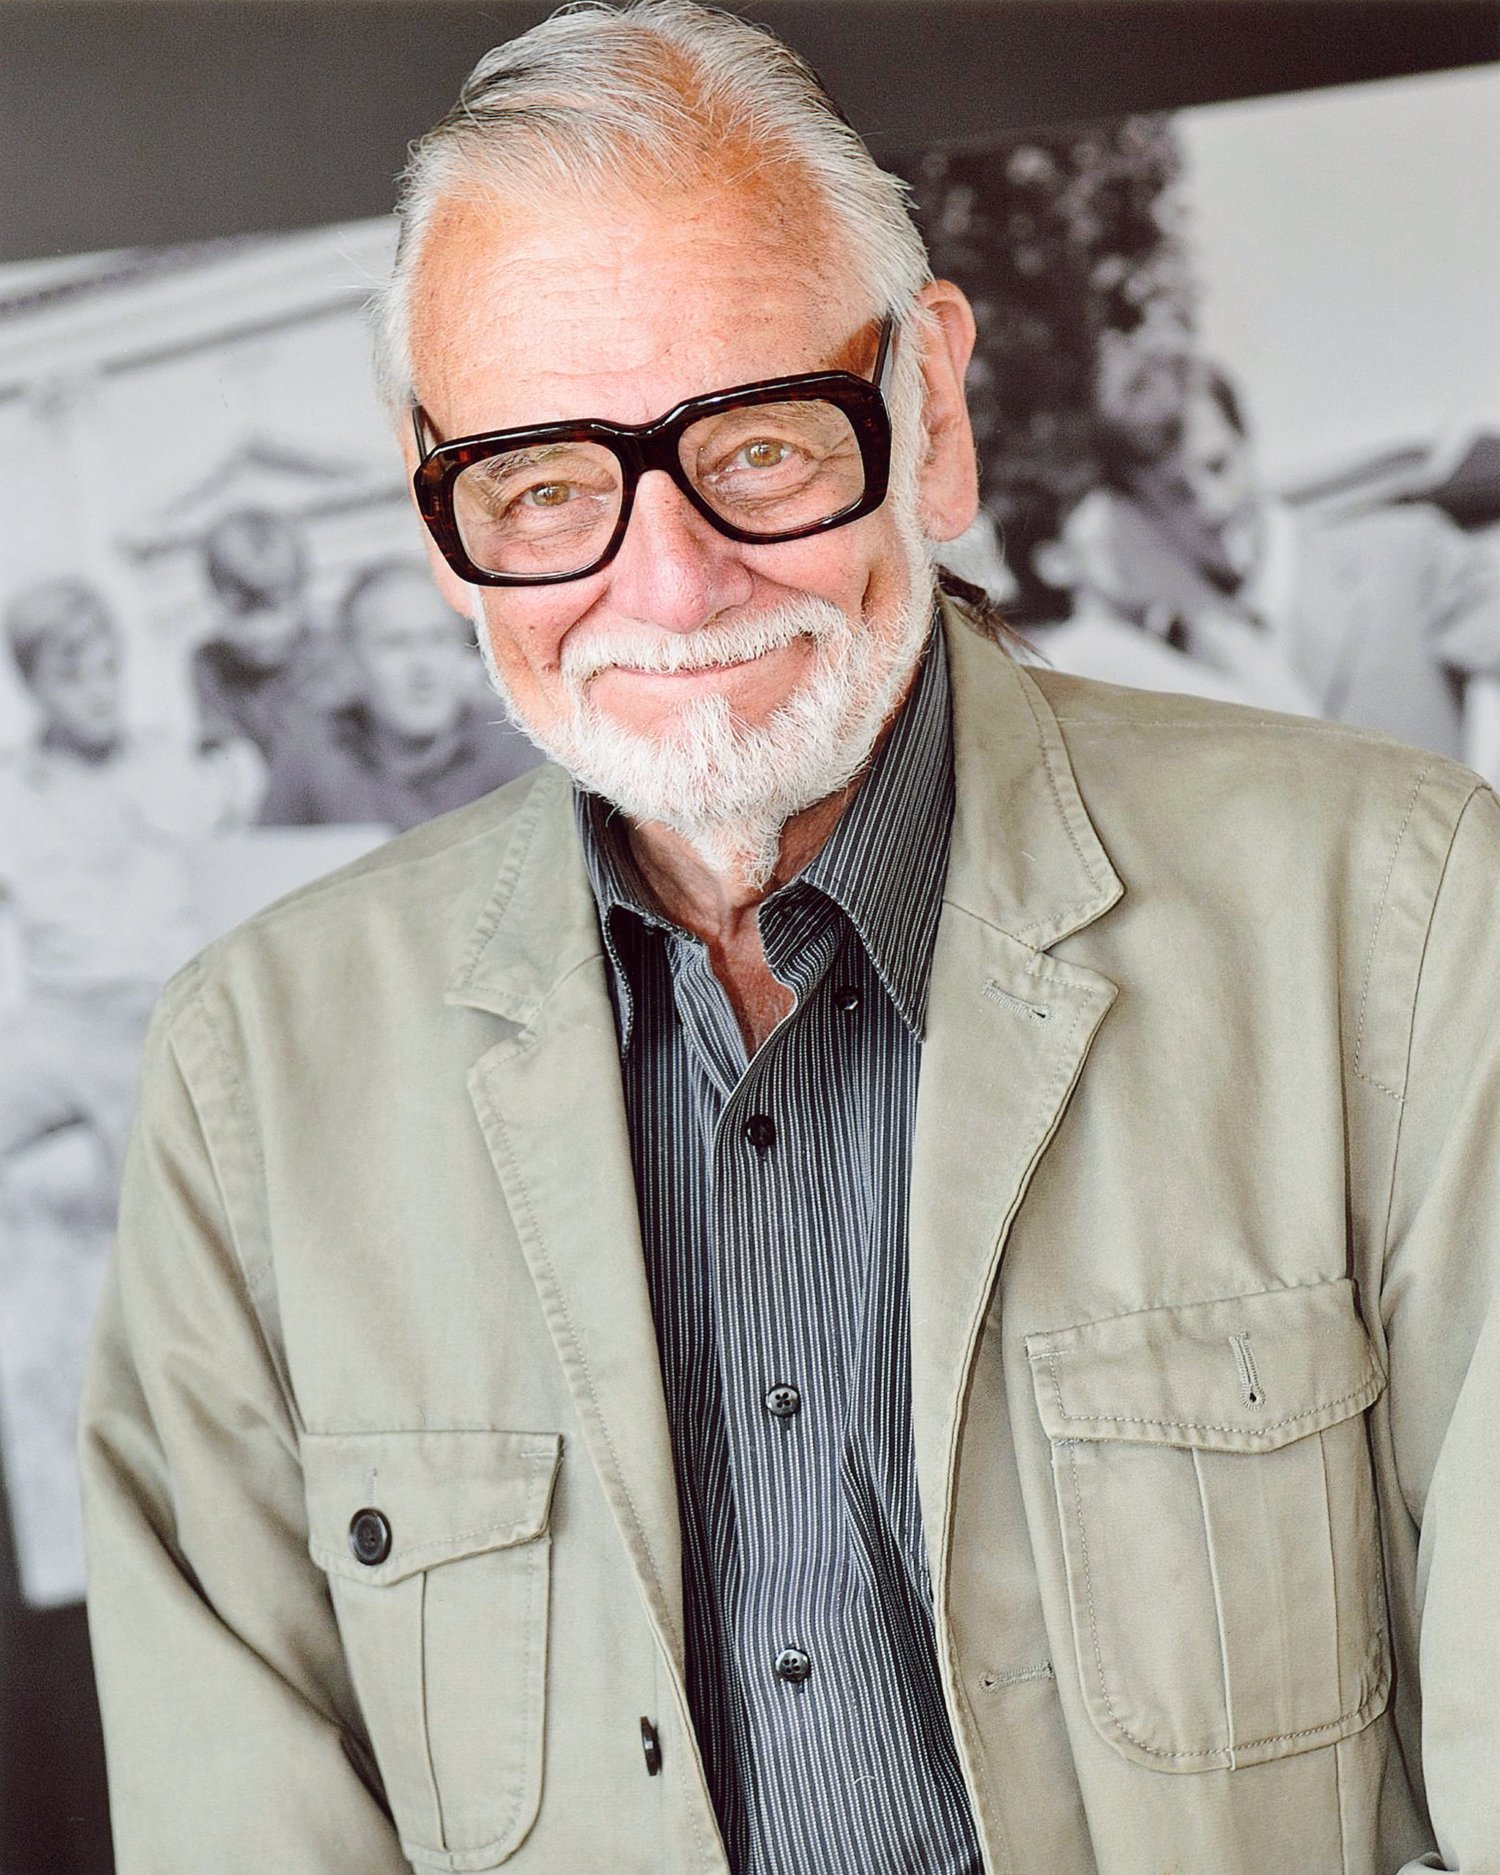 Filmmaker George A. Romero will be honored with a posthumous Walk of Fame star on Oct. 25 | Via @wofstargirl https://t.co/u6adBFhFoF